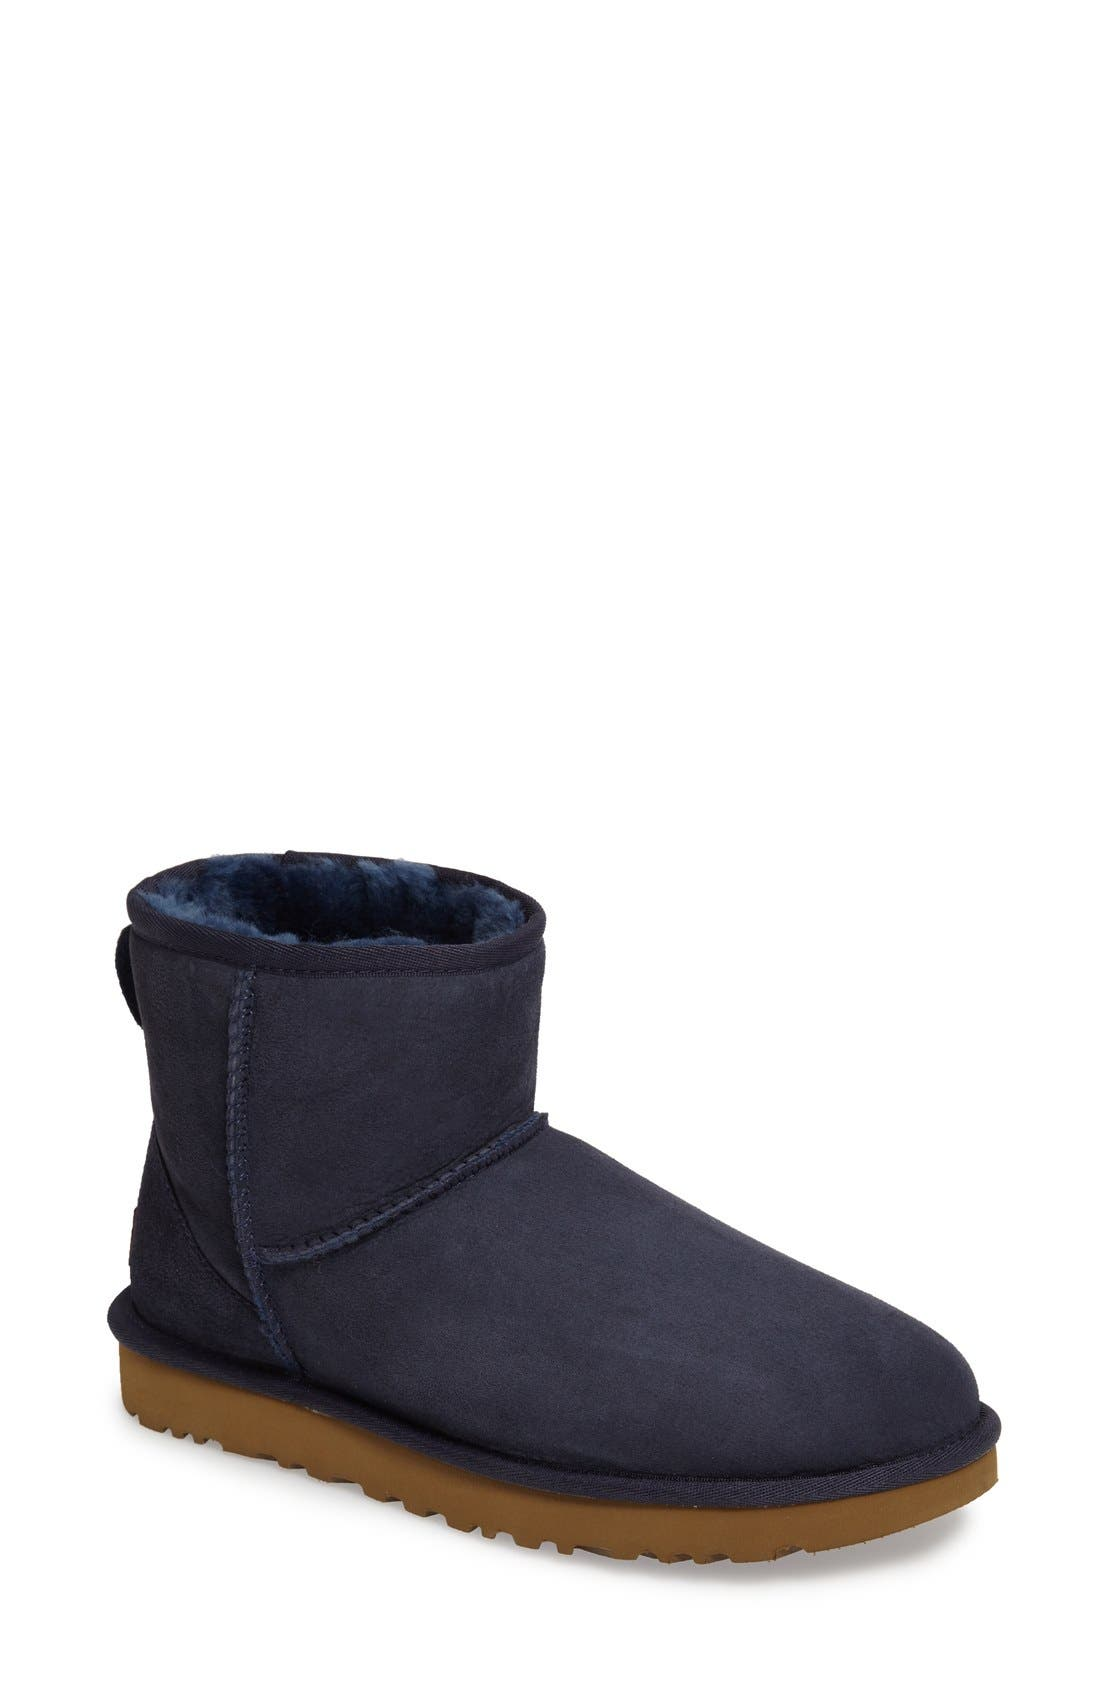 'Classic Mini II' Genuine Shearling Lined Boot,                             Main thumbnail 1, color,                             Navy Suede